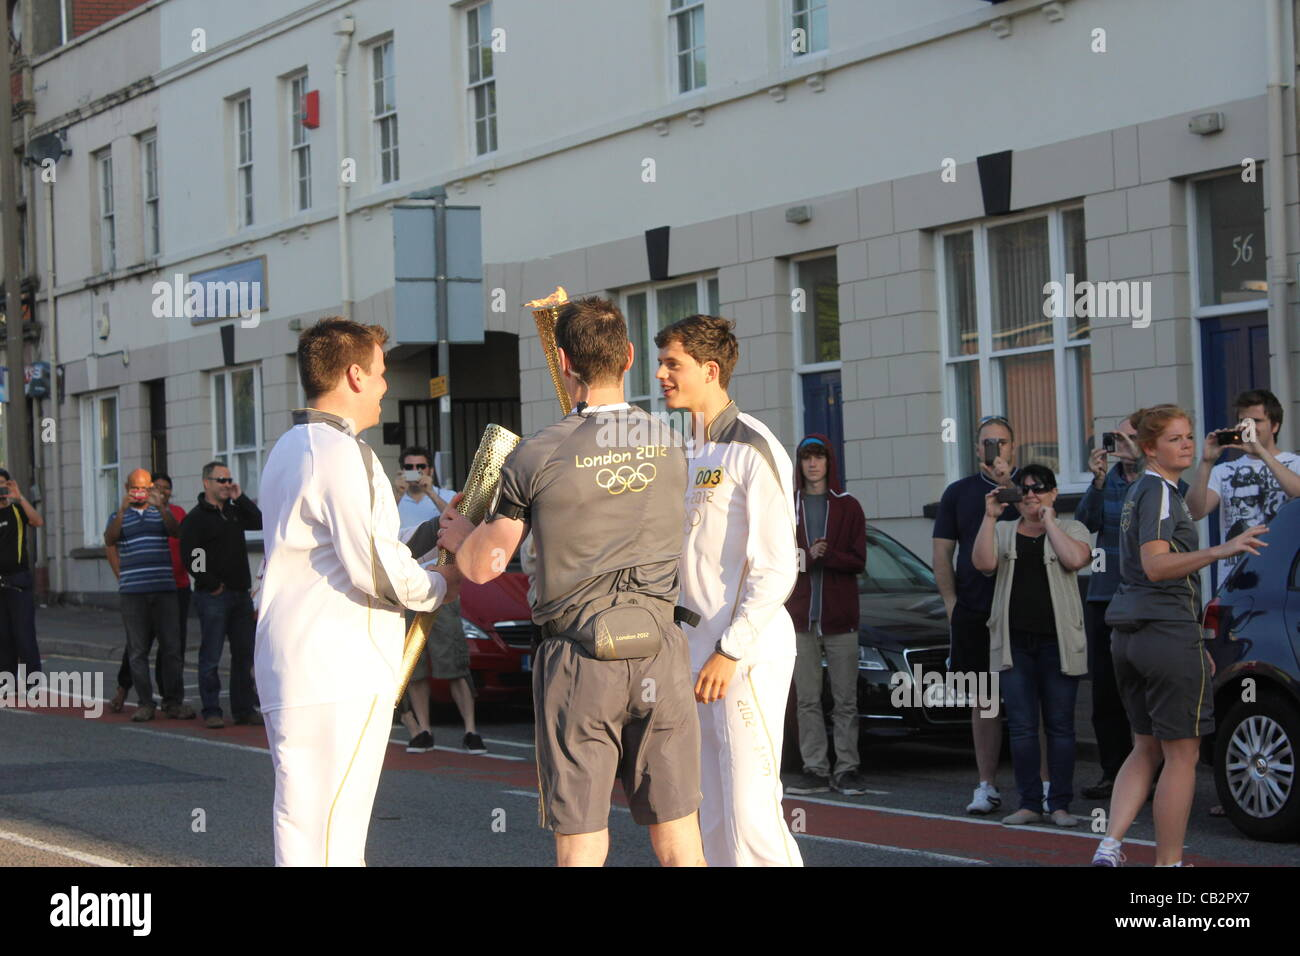 CARDIFF, UK, 26th May 2012. The Olympic flame handover to the next torchbearer. Zak Lee Green (right) passes the - Stock Image